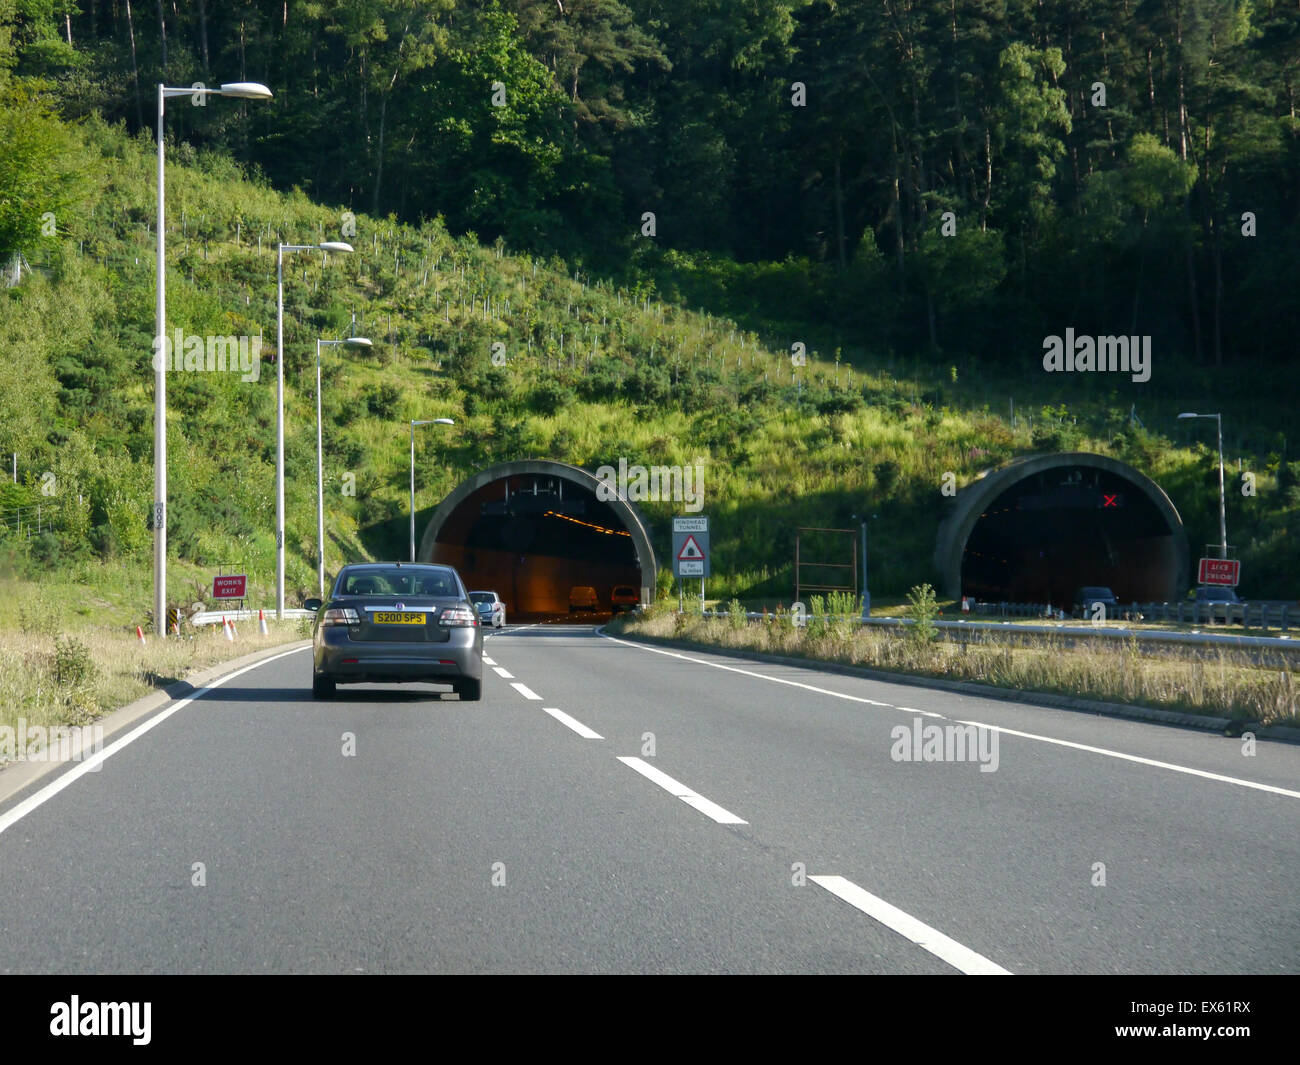 The Southbound entrance to the Hindhead Tunnel, Hindhead, England - Stock Image